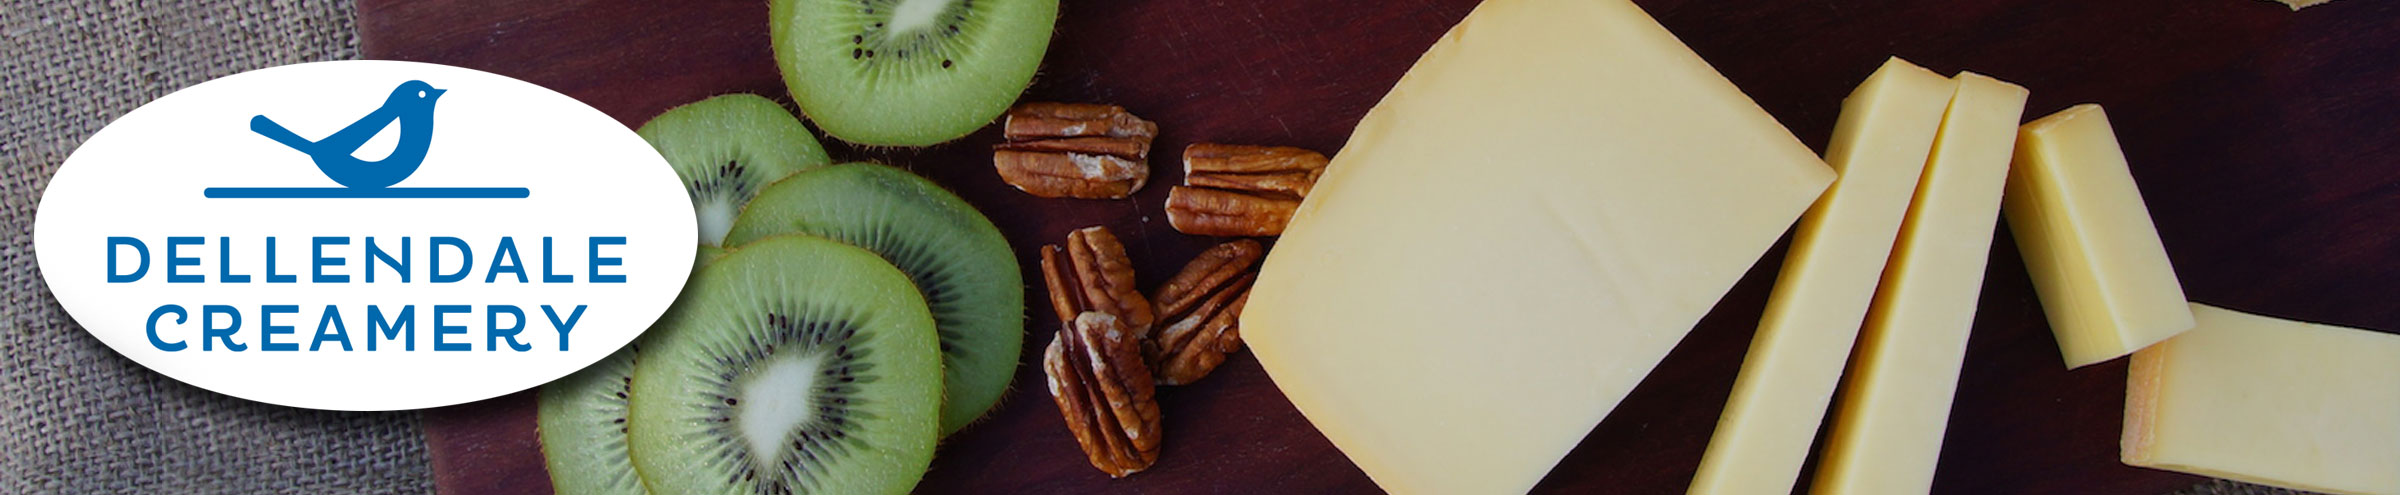 Cheese, pecans and Kiwi fruit